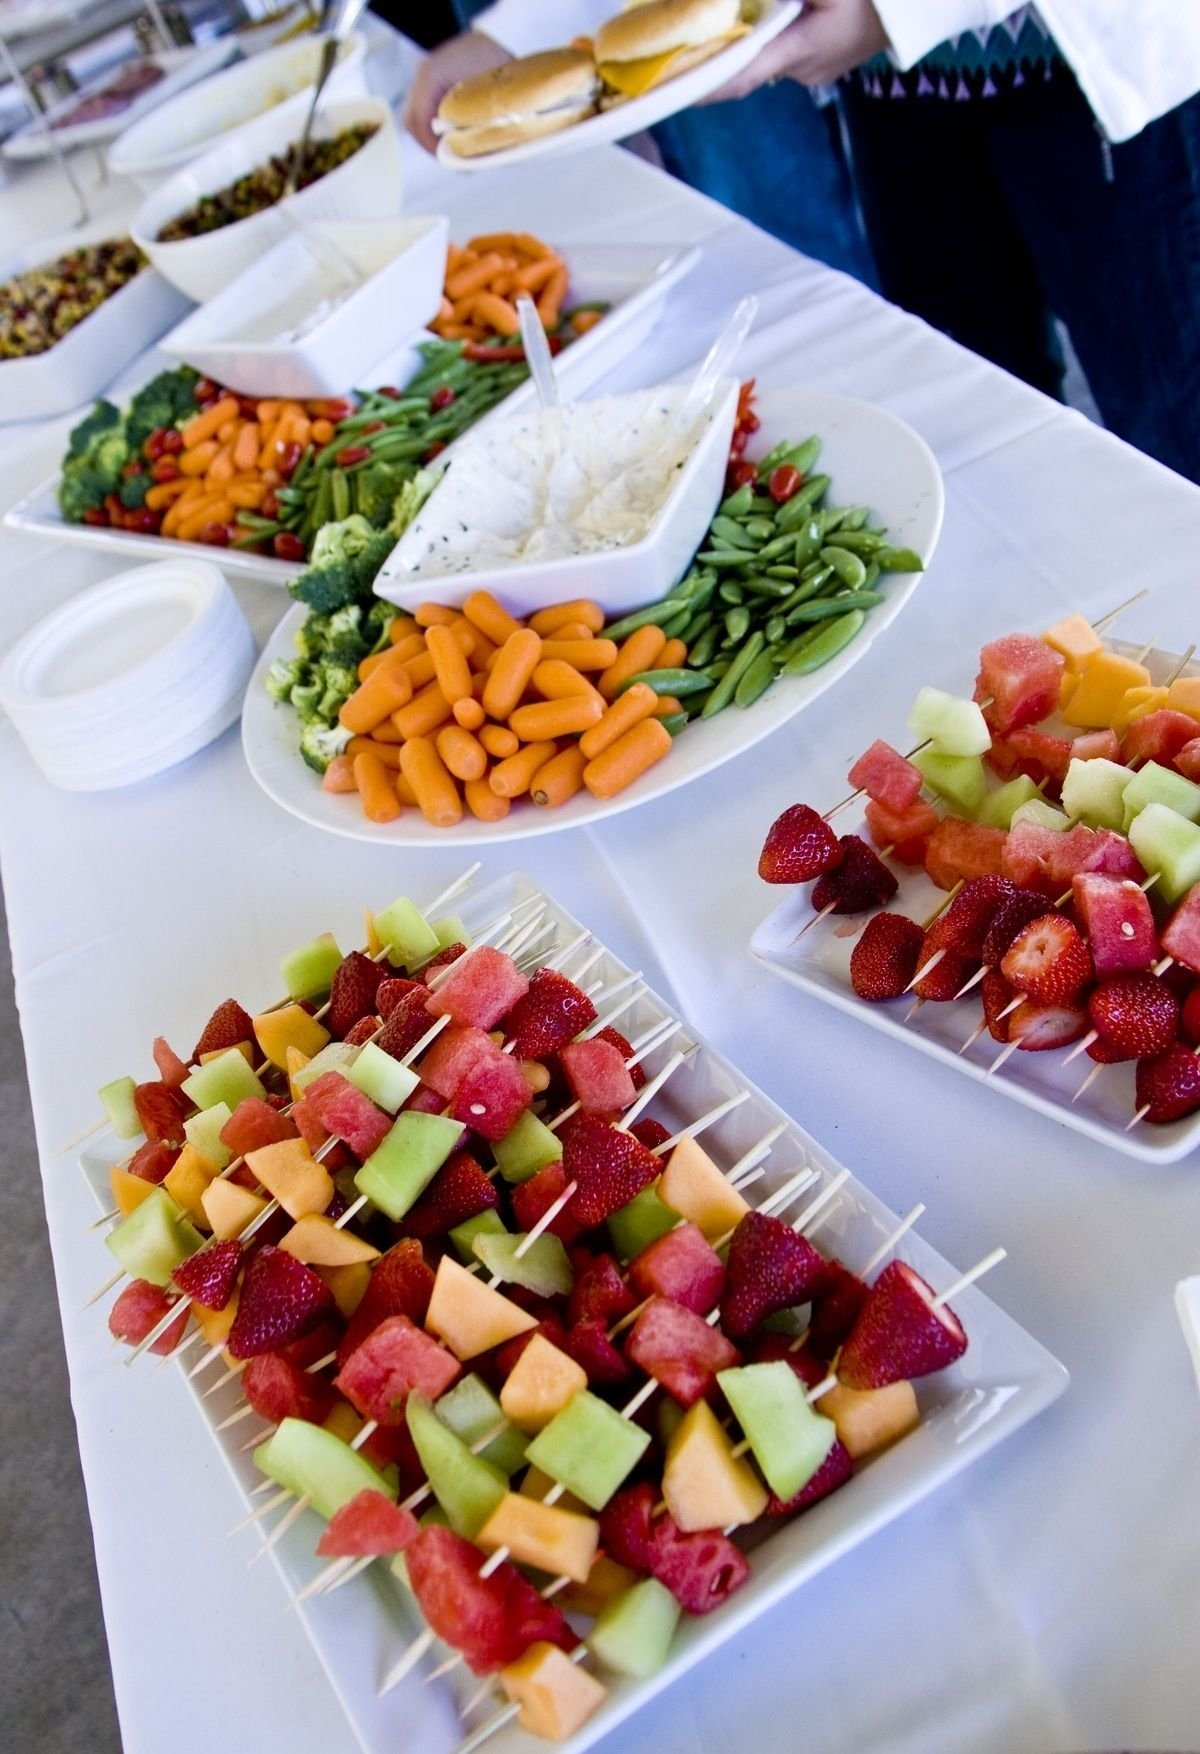 10 Nice Food Ideas For A Wedding veggie trays like this and fruit kabobs for the wedding with 2 2021